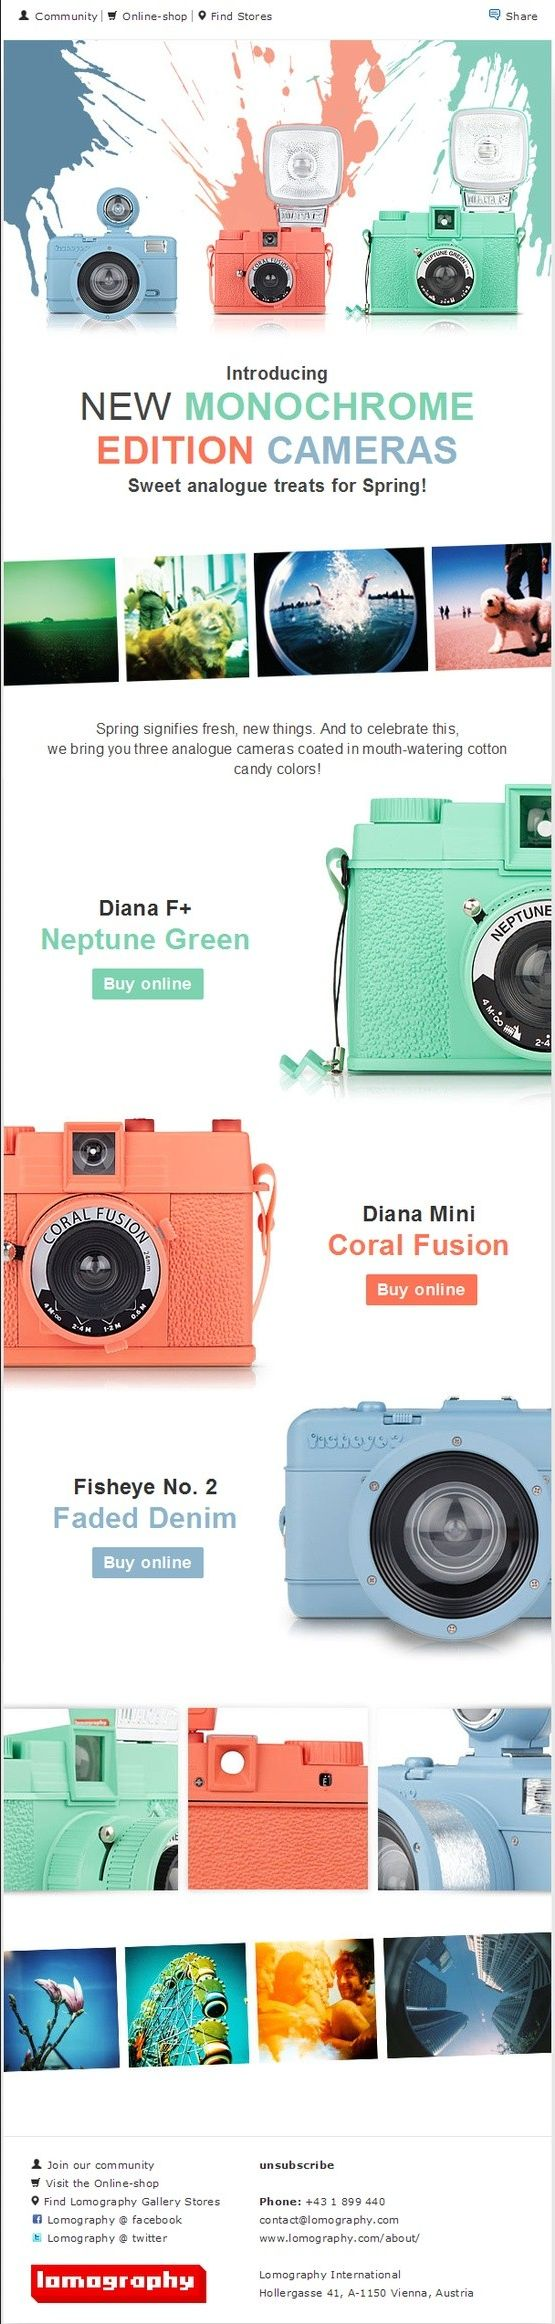 Lomography International – Newsletter HTML email marketing design